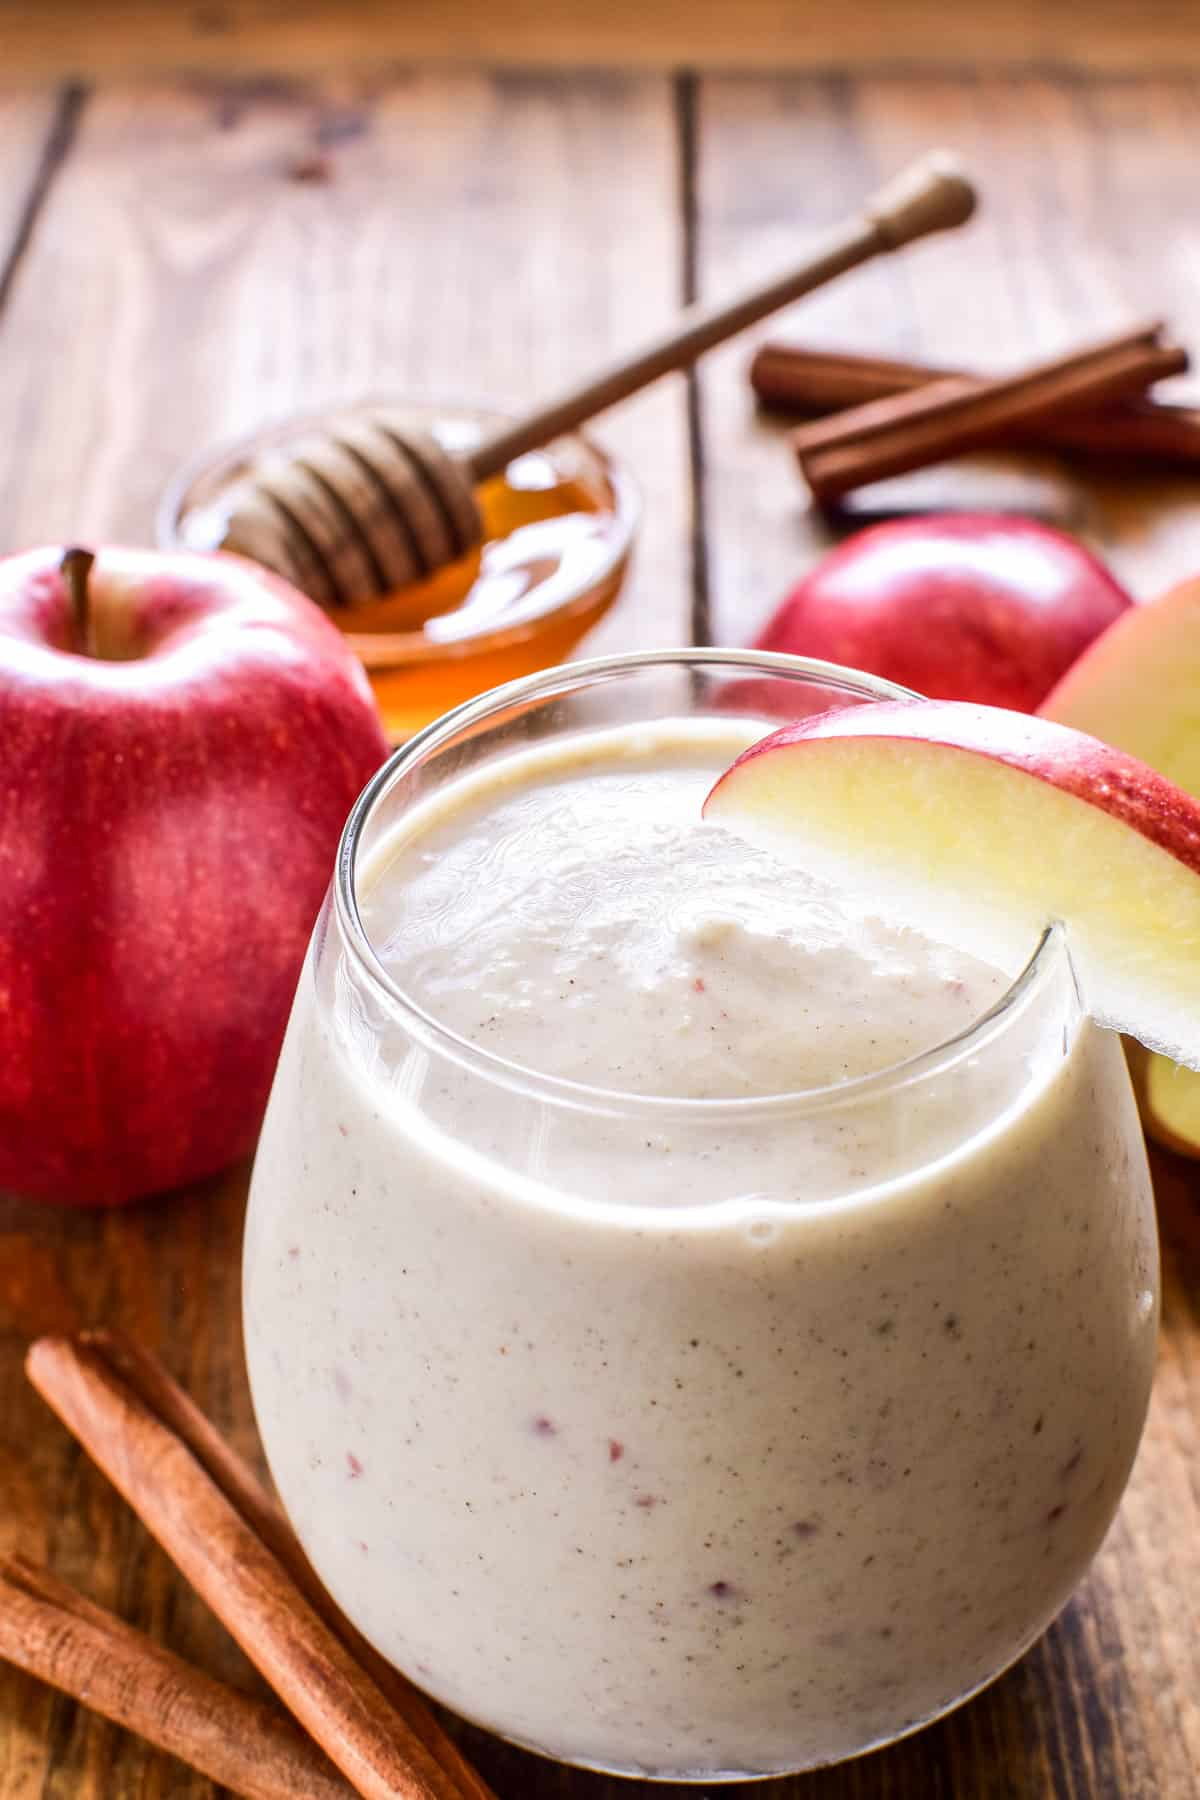 Apple Smoothie in a glass with an apple slice garnish and fresh apples in the background